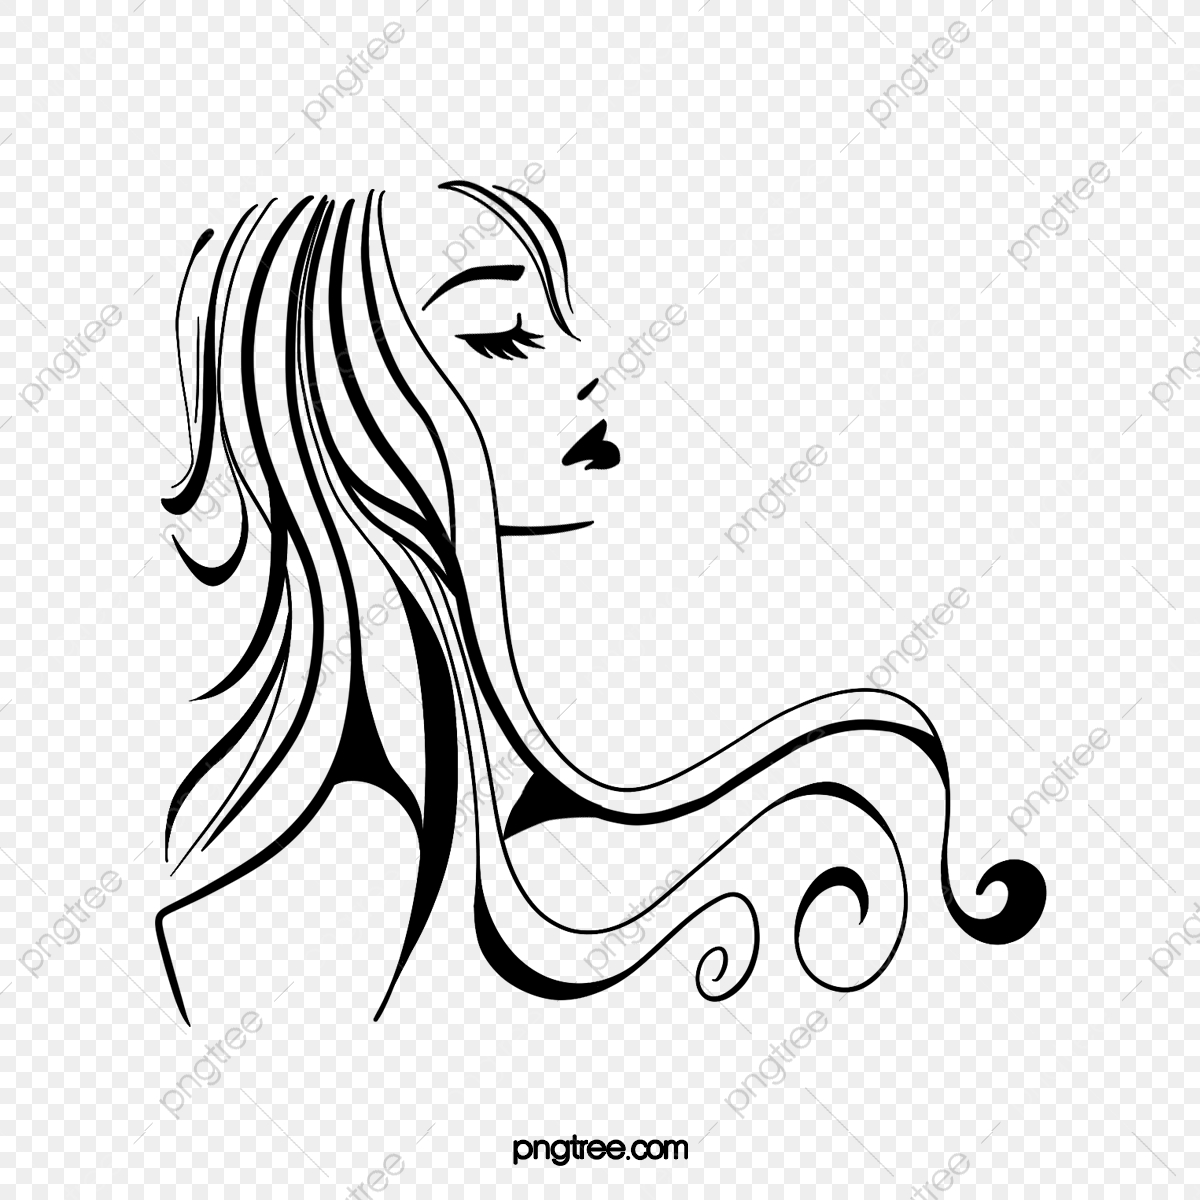 Cartoon Black Roll Long Hair Woman Side Face Illustration Black Curly Hair Long Hair Png Transparent Clipart Image And Psd File For Free Download